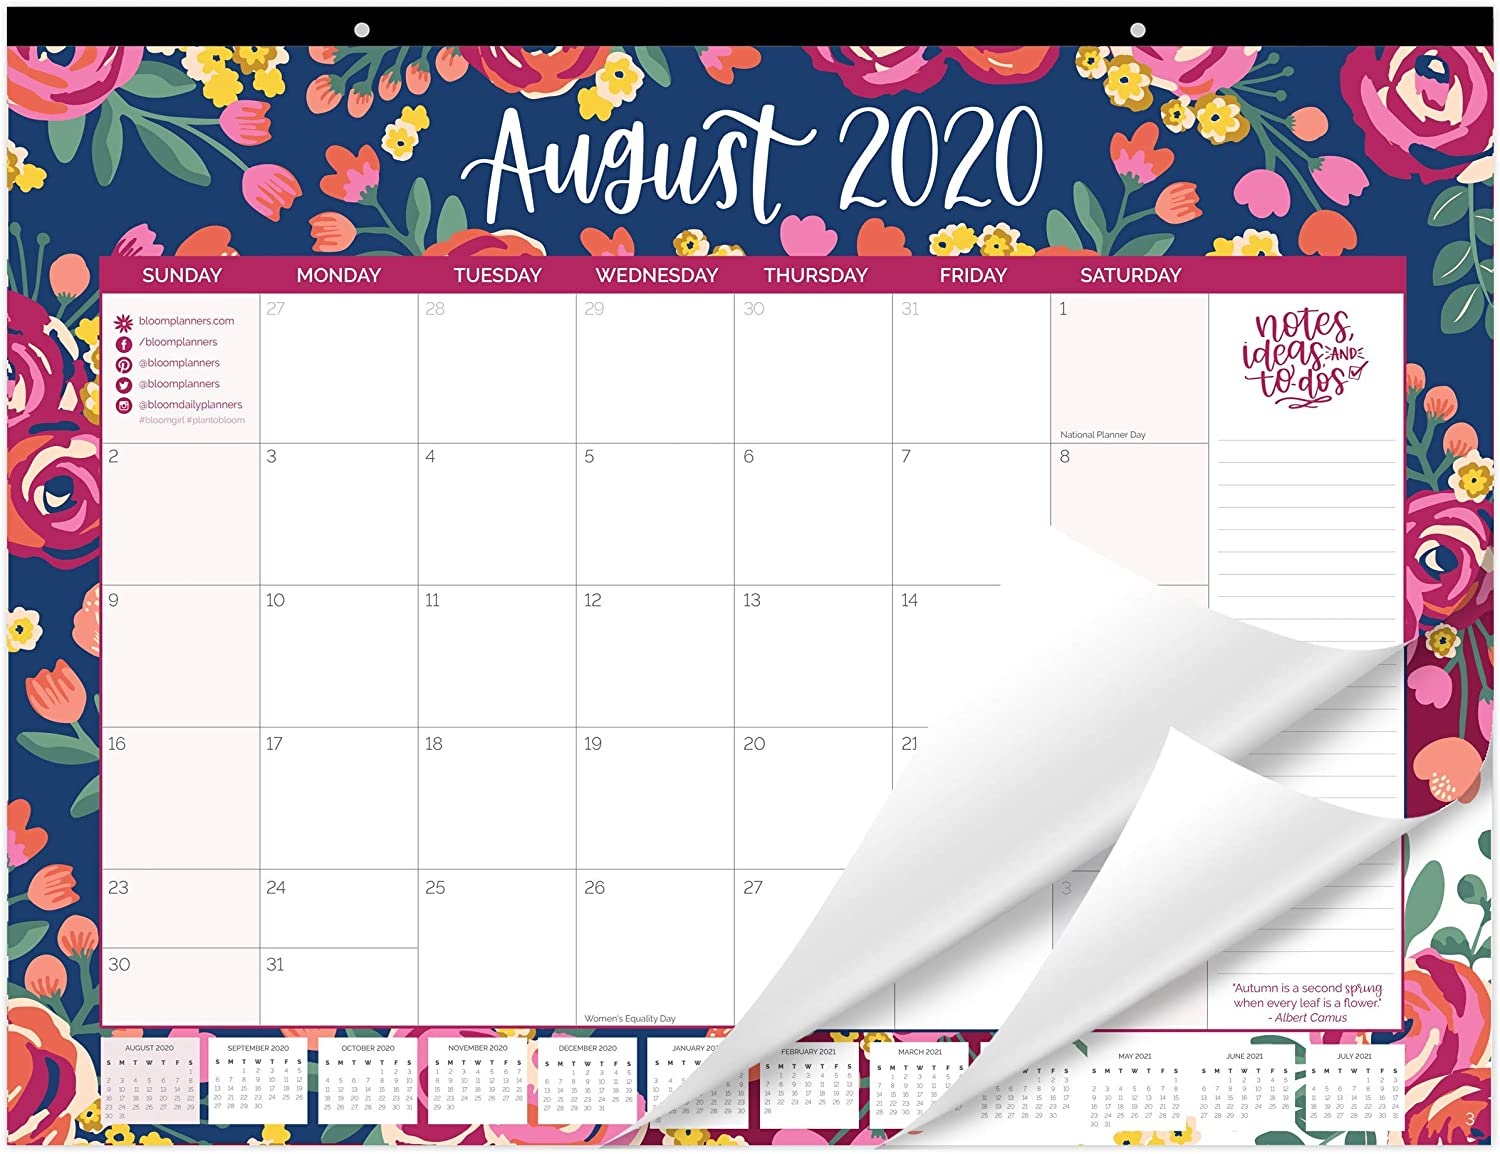 "bloom daily planners 2020-2021 Academic Year Desk/Wall Monthly Calendar Pad (August 2020 - July 2021) - Large 21"" x 16"" Hanging or Desktop Blotter - Vintage Floral"